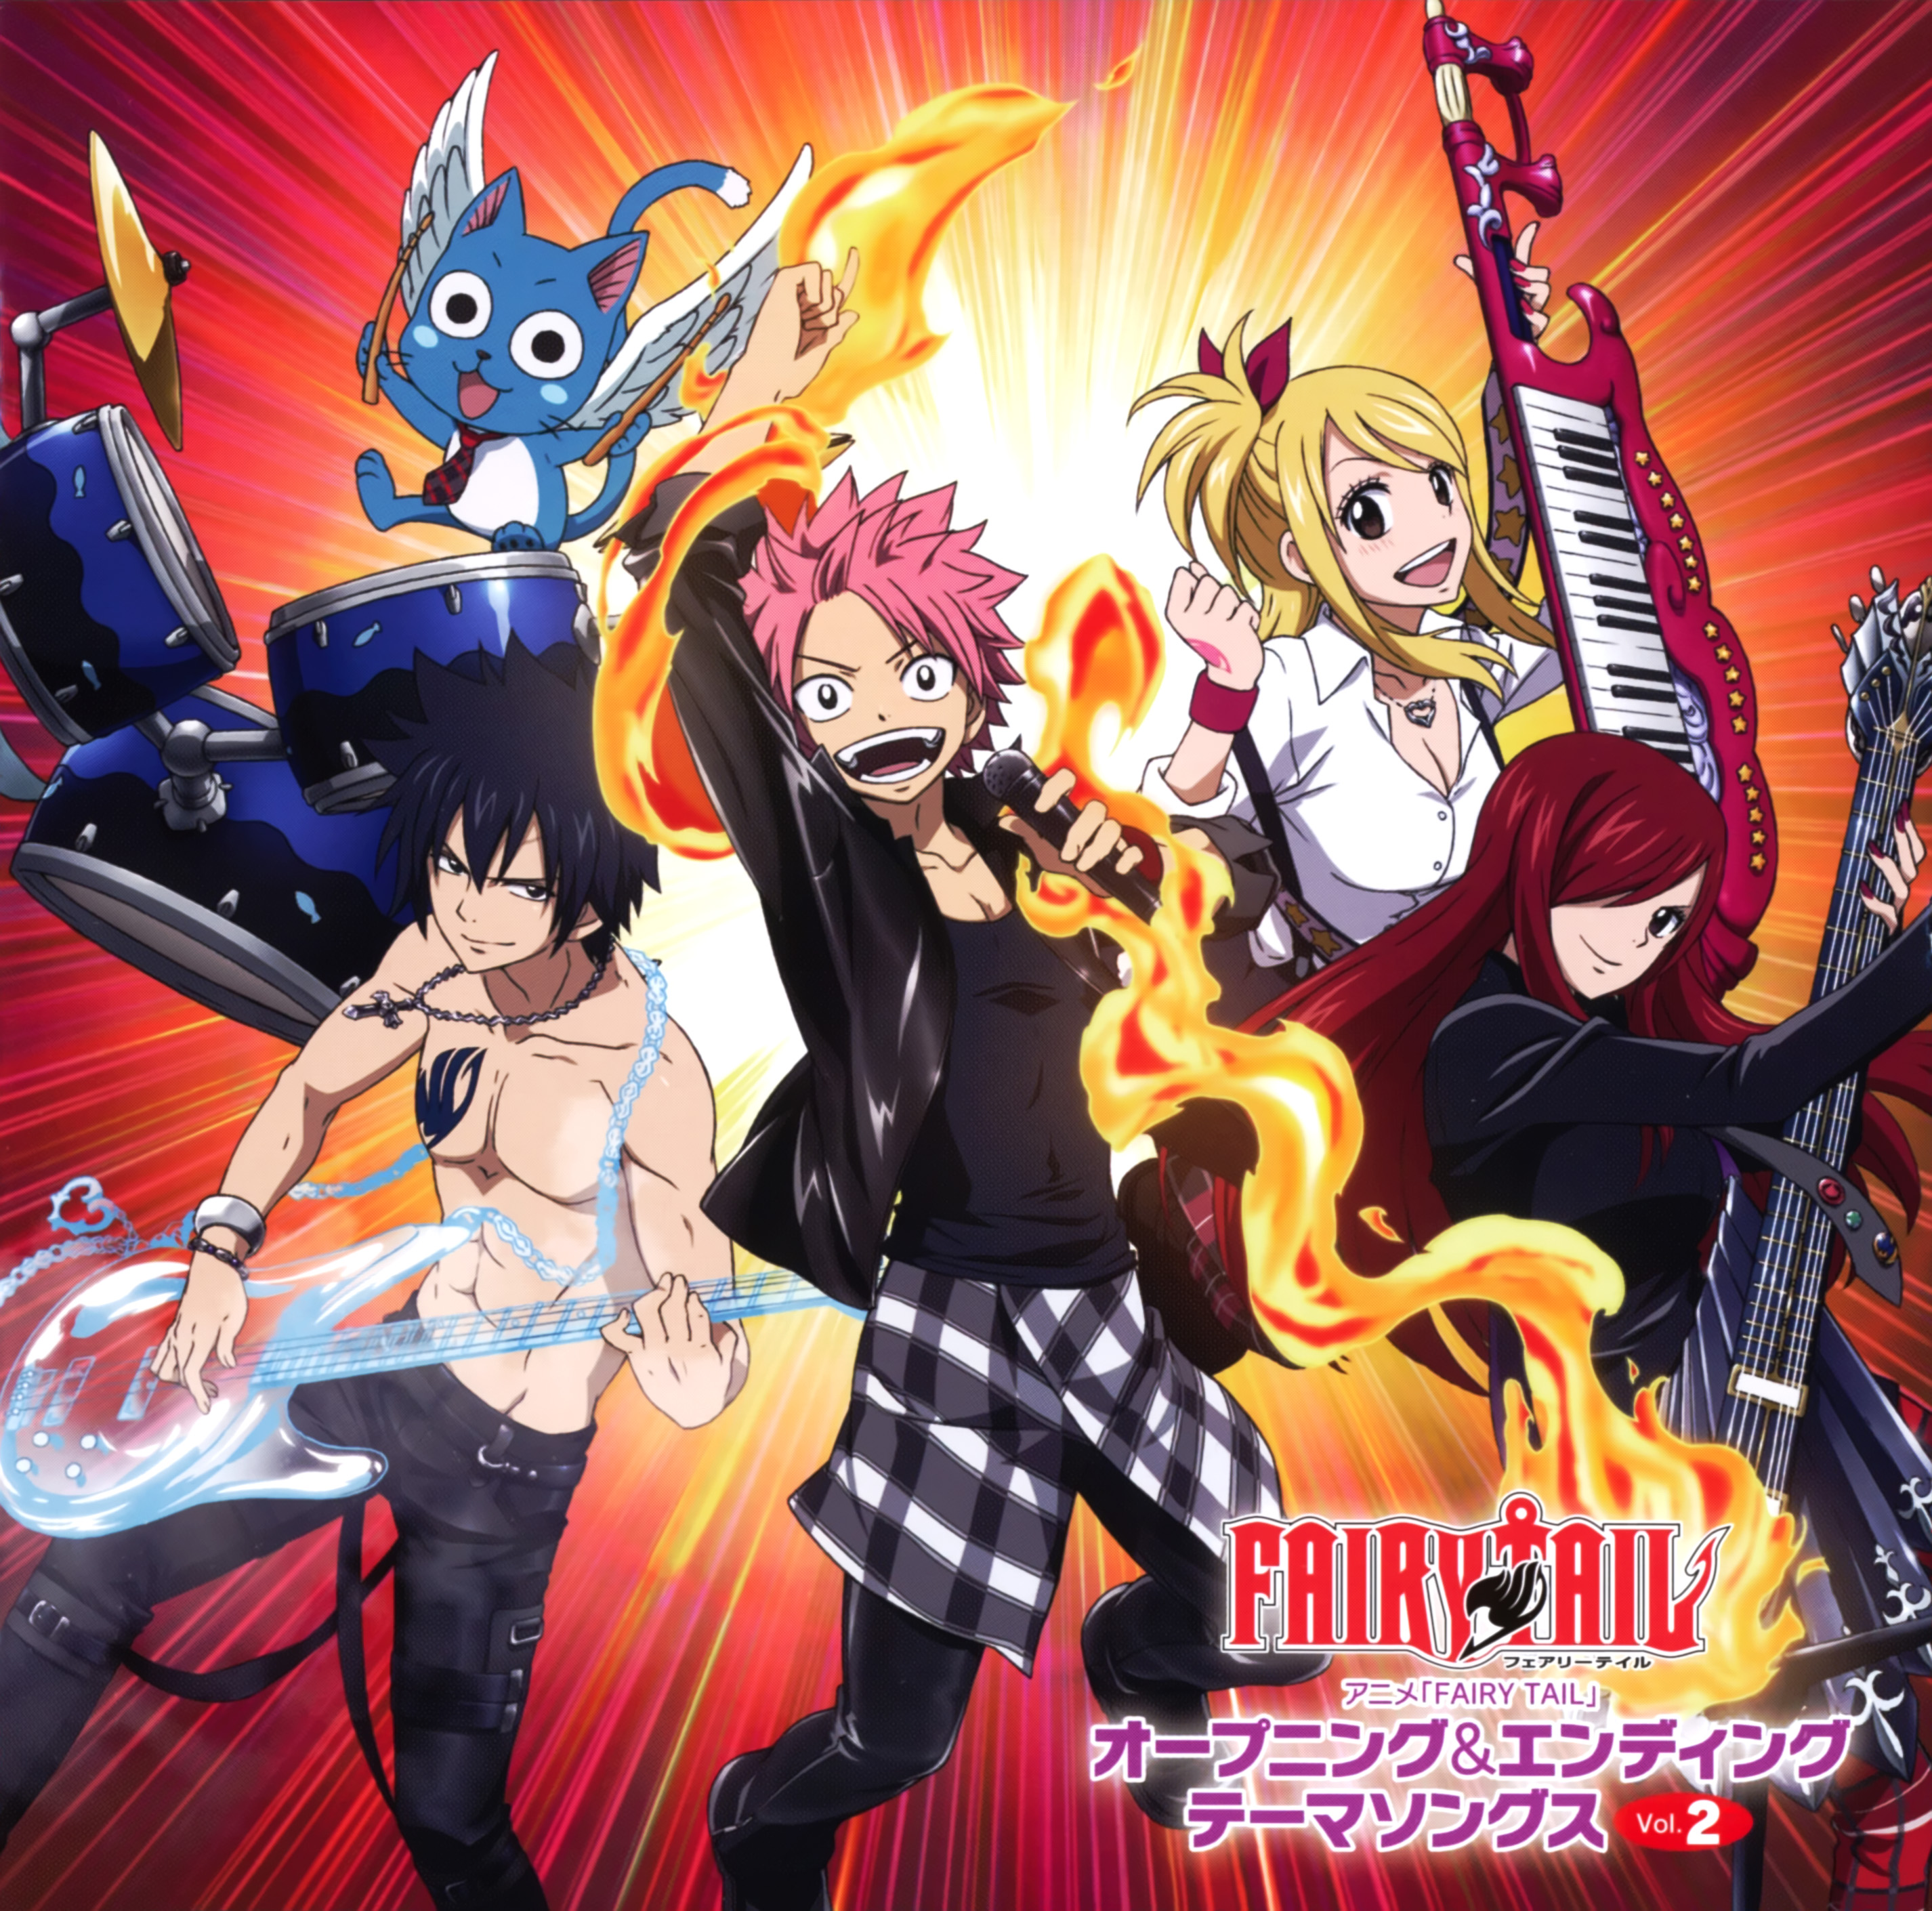 http://vignette3.wikia.nocookie.net/fairytail/images/e/eb/Fairy_Tail_Intro_%26_Outro_Themes_Vol_2.jpg/revision/latest?cb=20120524190907